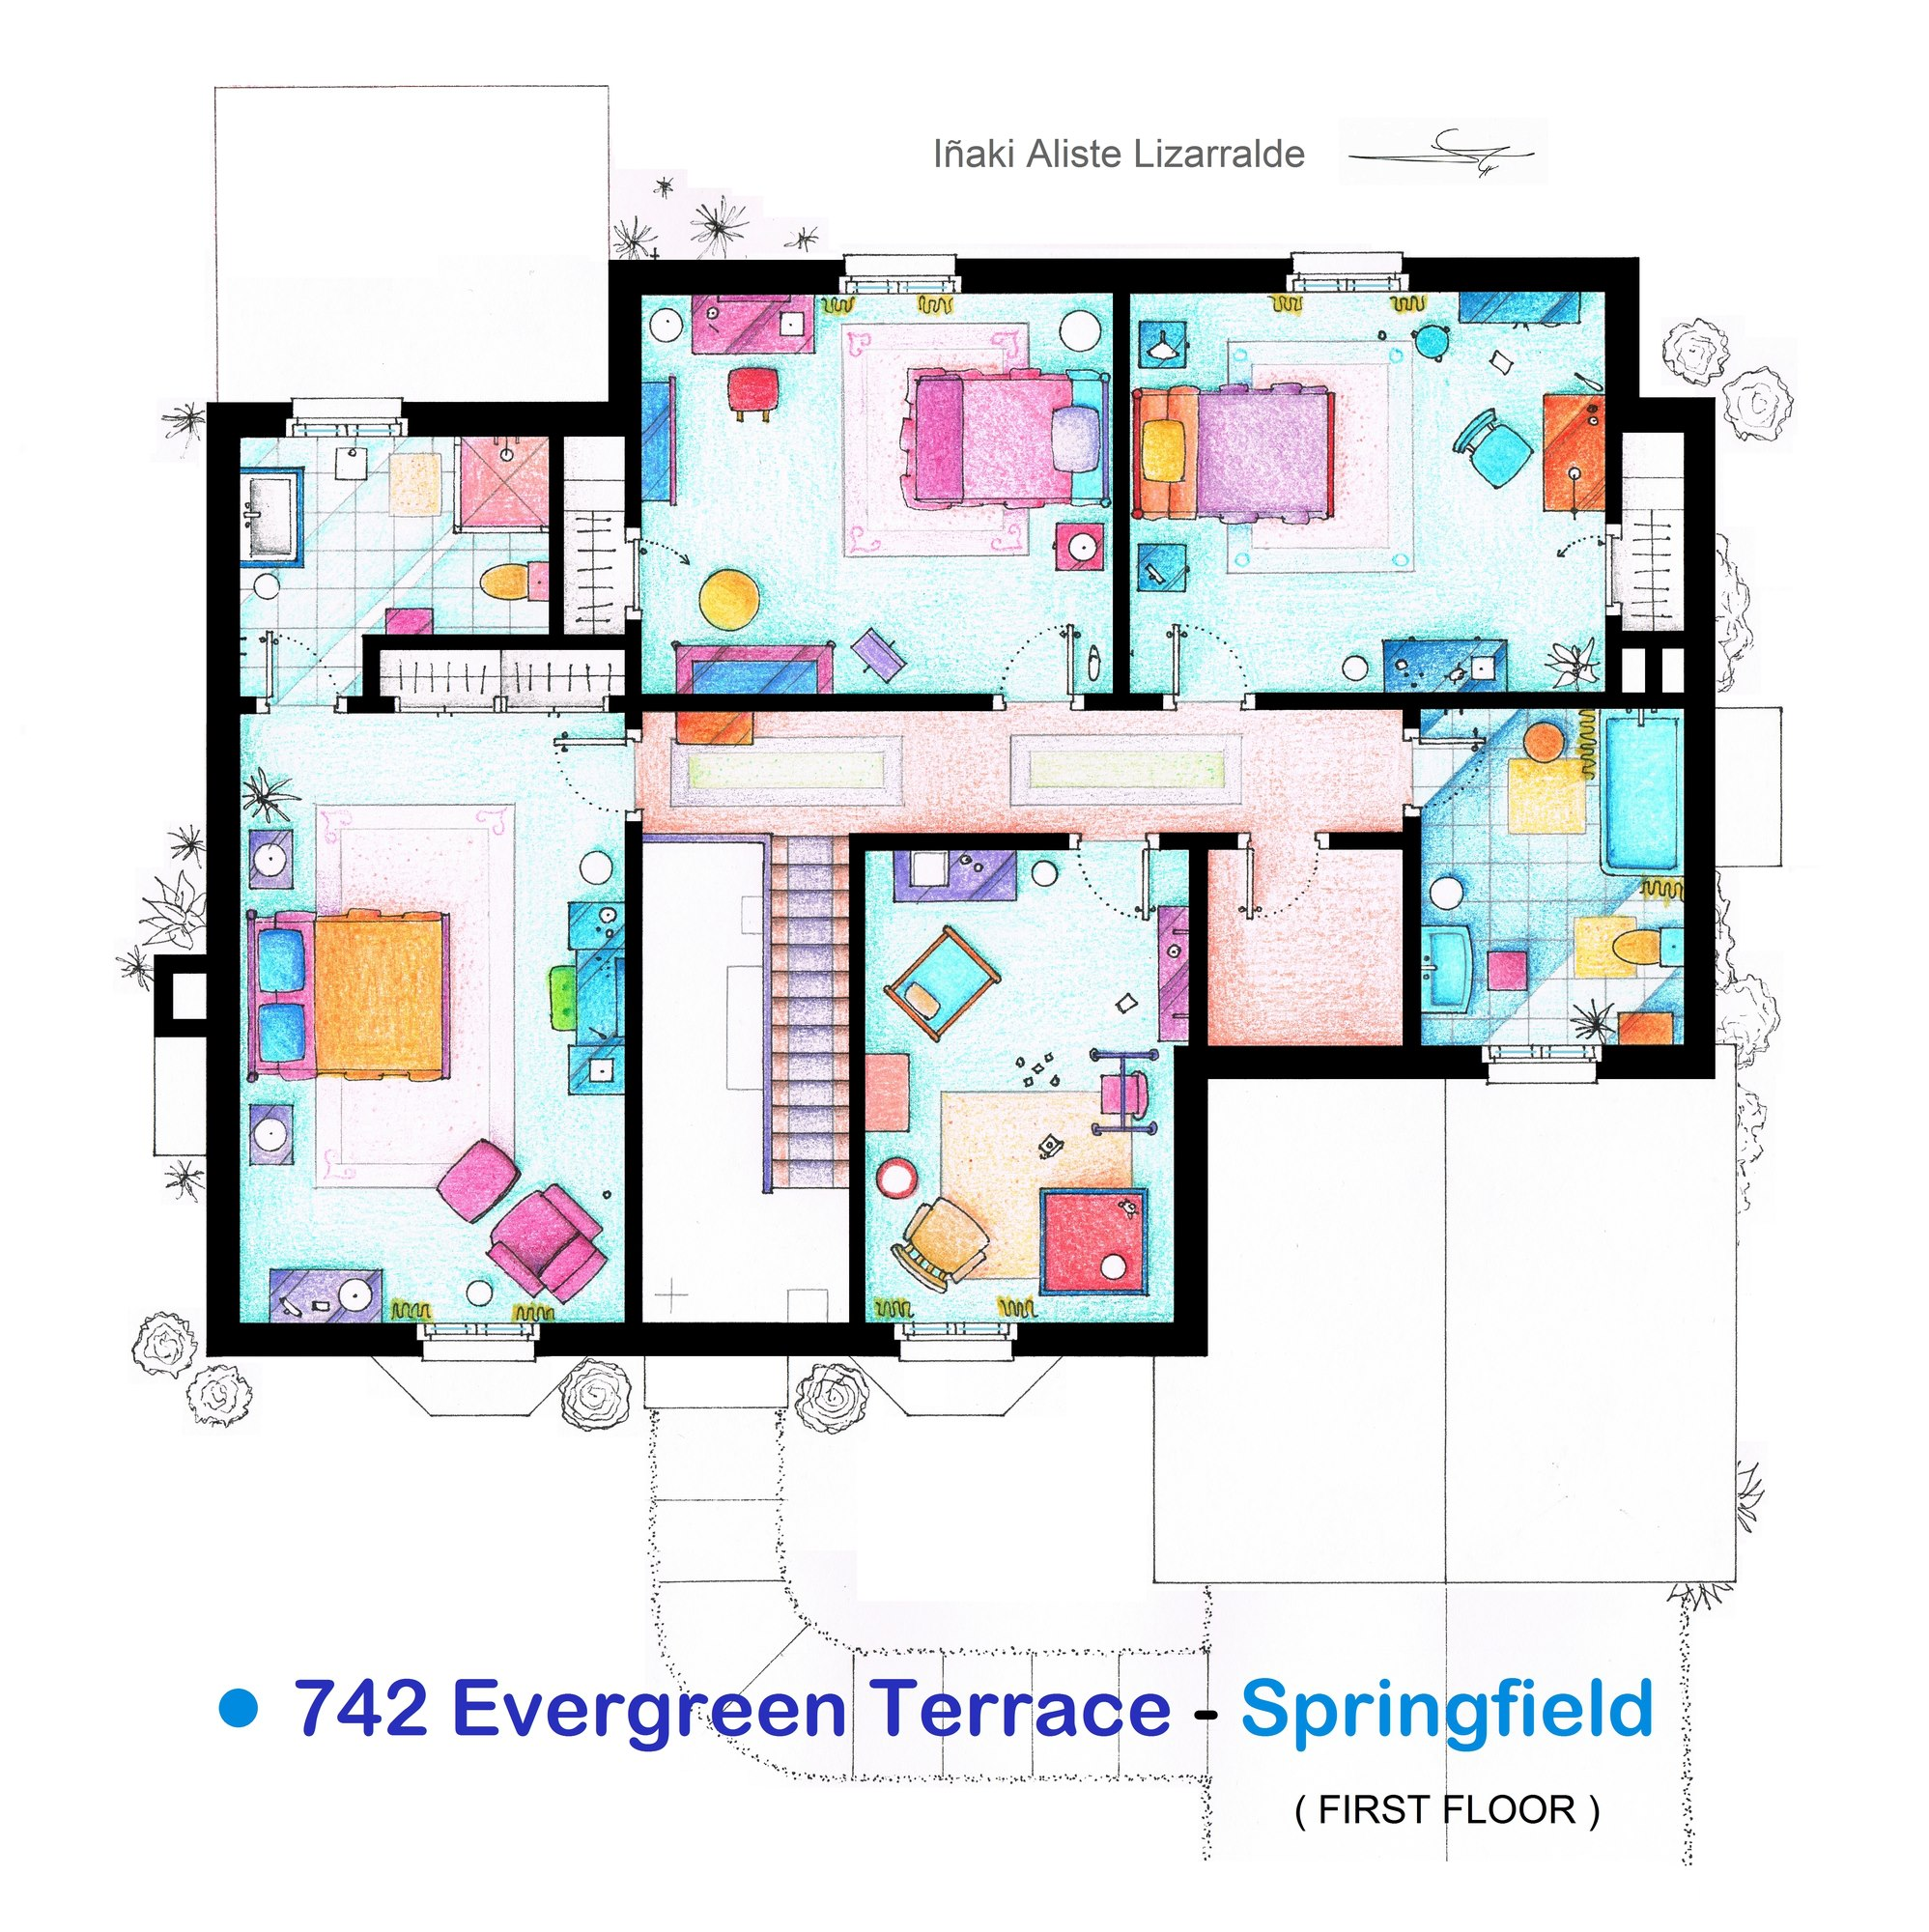 The Simpsons Apartment Floor Plan (2nd Floor)